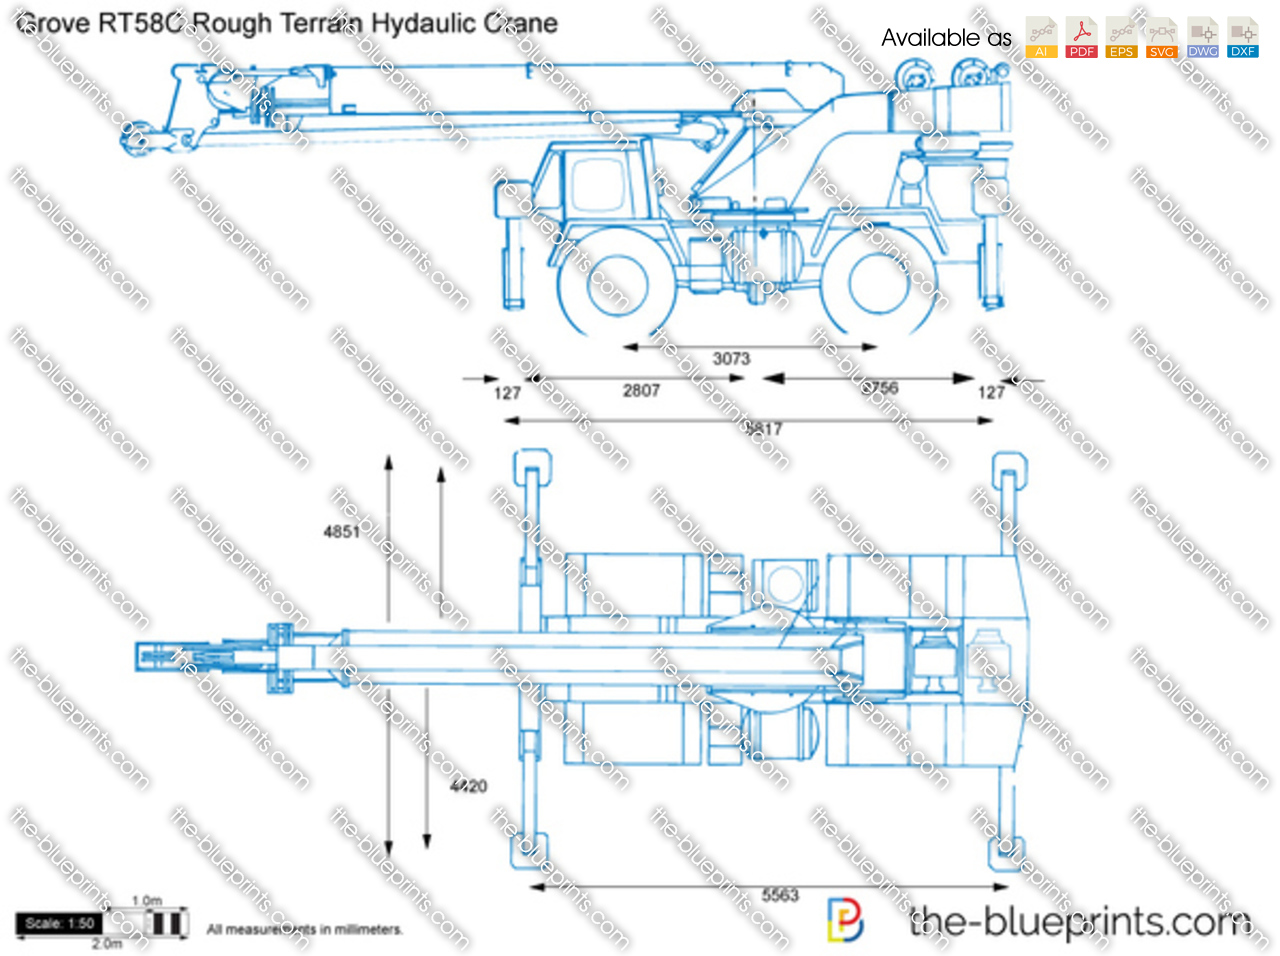 Grove RT58C Rough Terrain Hydaulic Crane